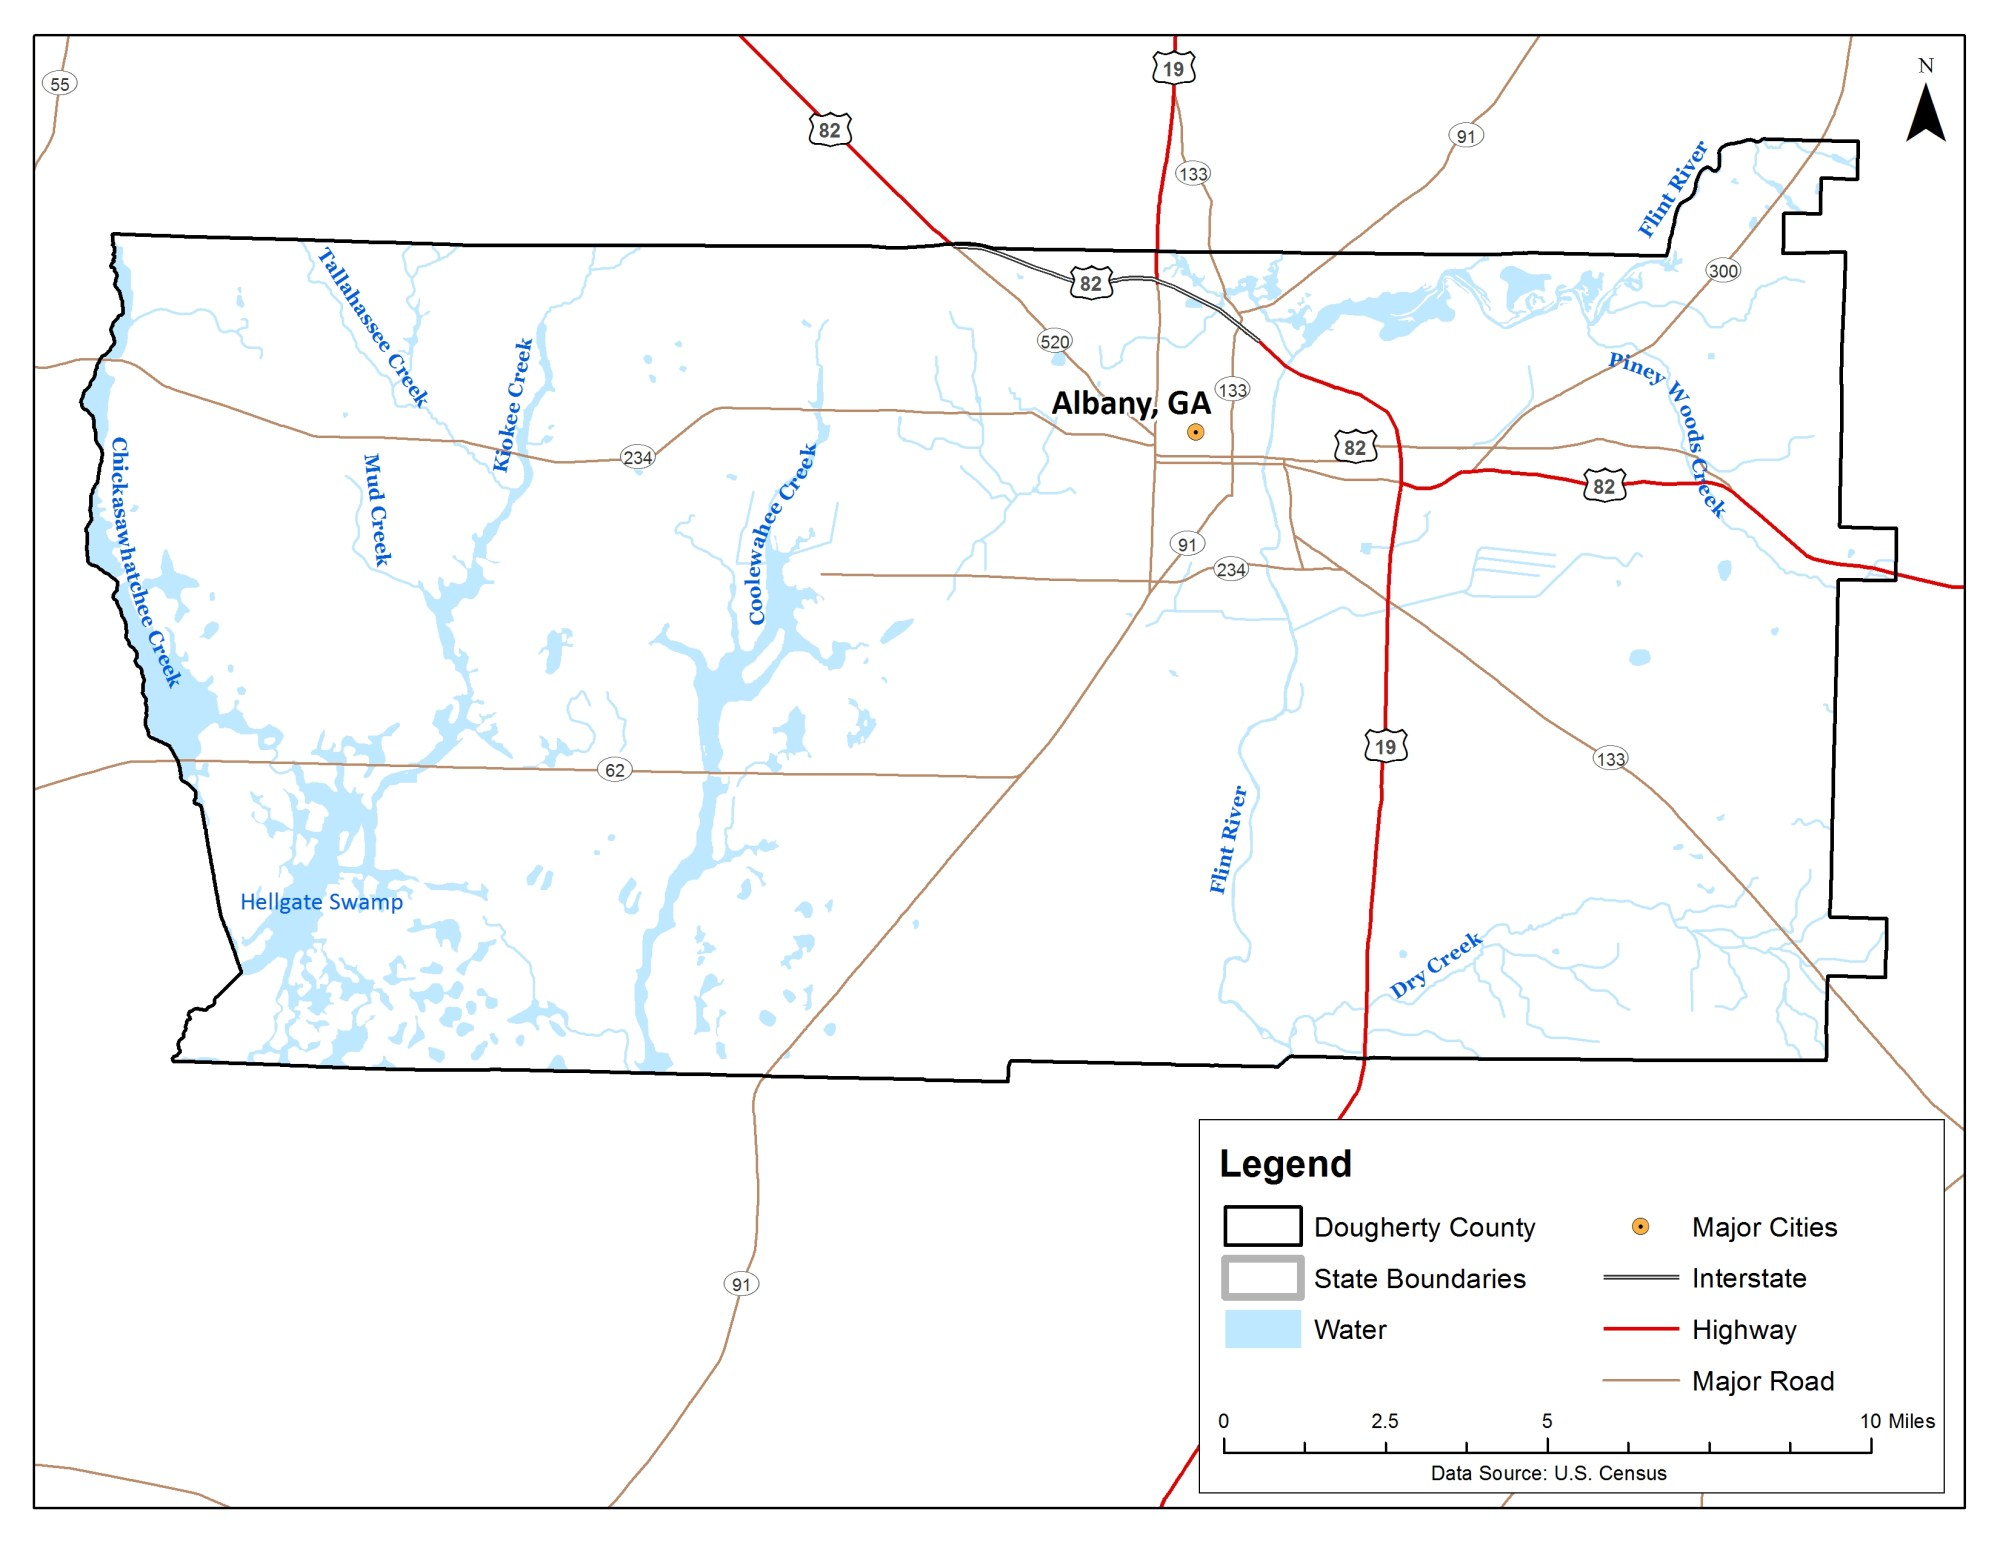 hight resolution of city of albany and dougherty county georgia image source american farmland trust